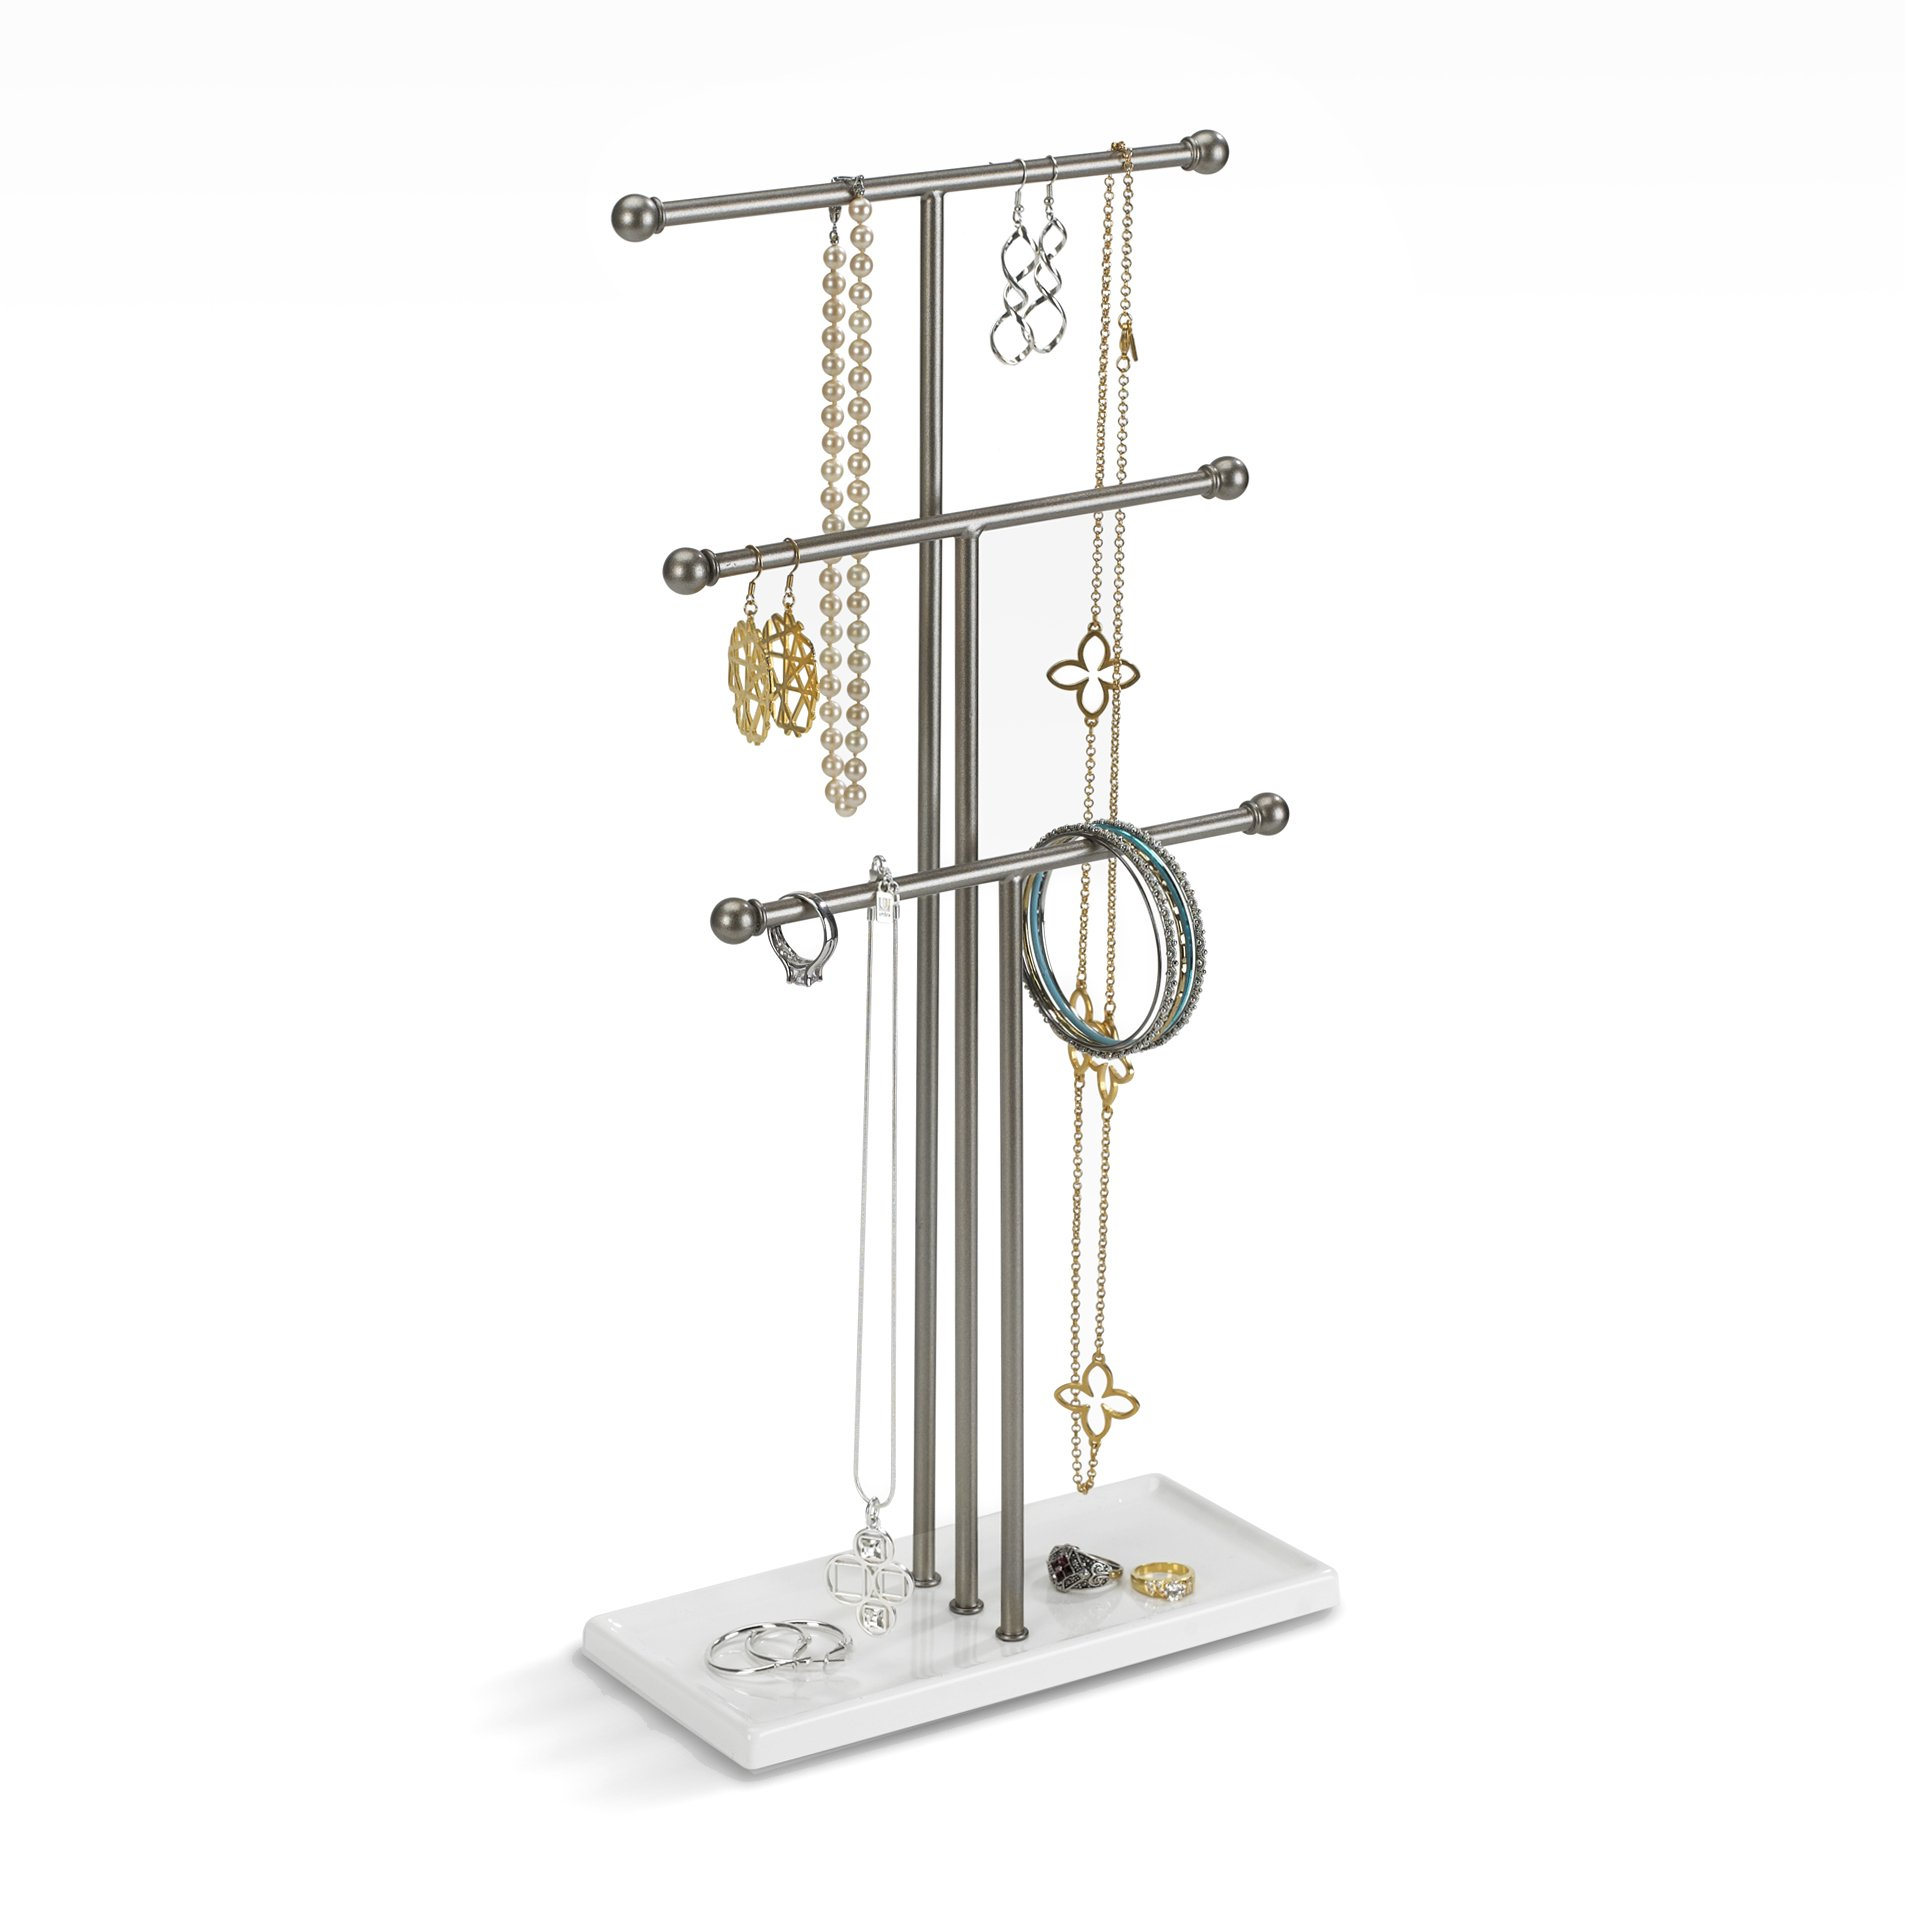 Umbra Trigem Hanging Jewelry Stand – 3 Tier Table Top Necklace Holder and Jewelry Display with Jewelry Tray Base, Organizes Necklaces, Bracelets, Earrings, Rings, Watches, and more, White/Brass